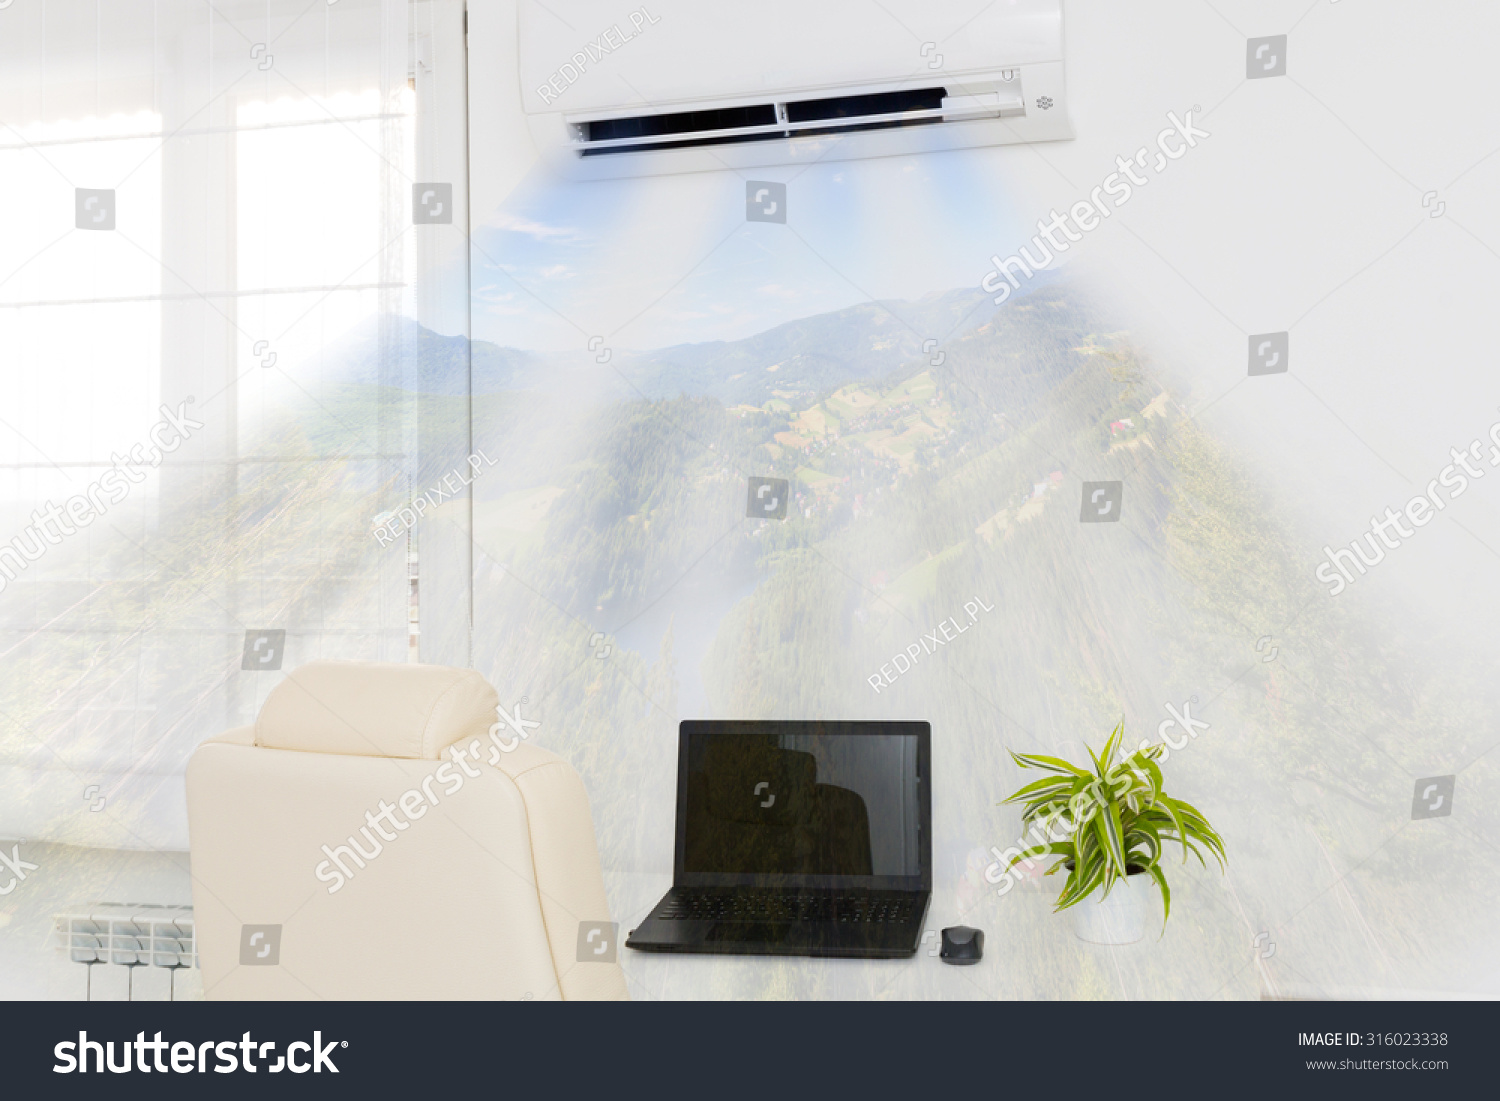 #7C8B24 Air Conditioner Blowing Cold Air. Home Interior Concepts Brand New  10131 Home Air